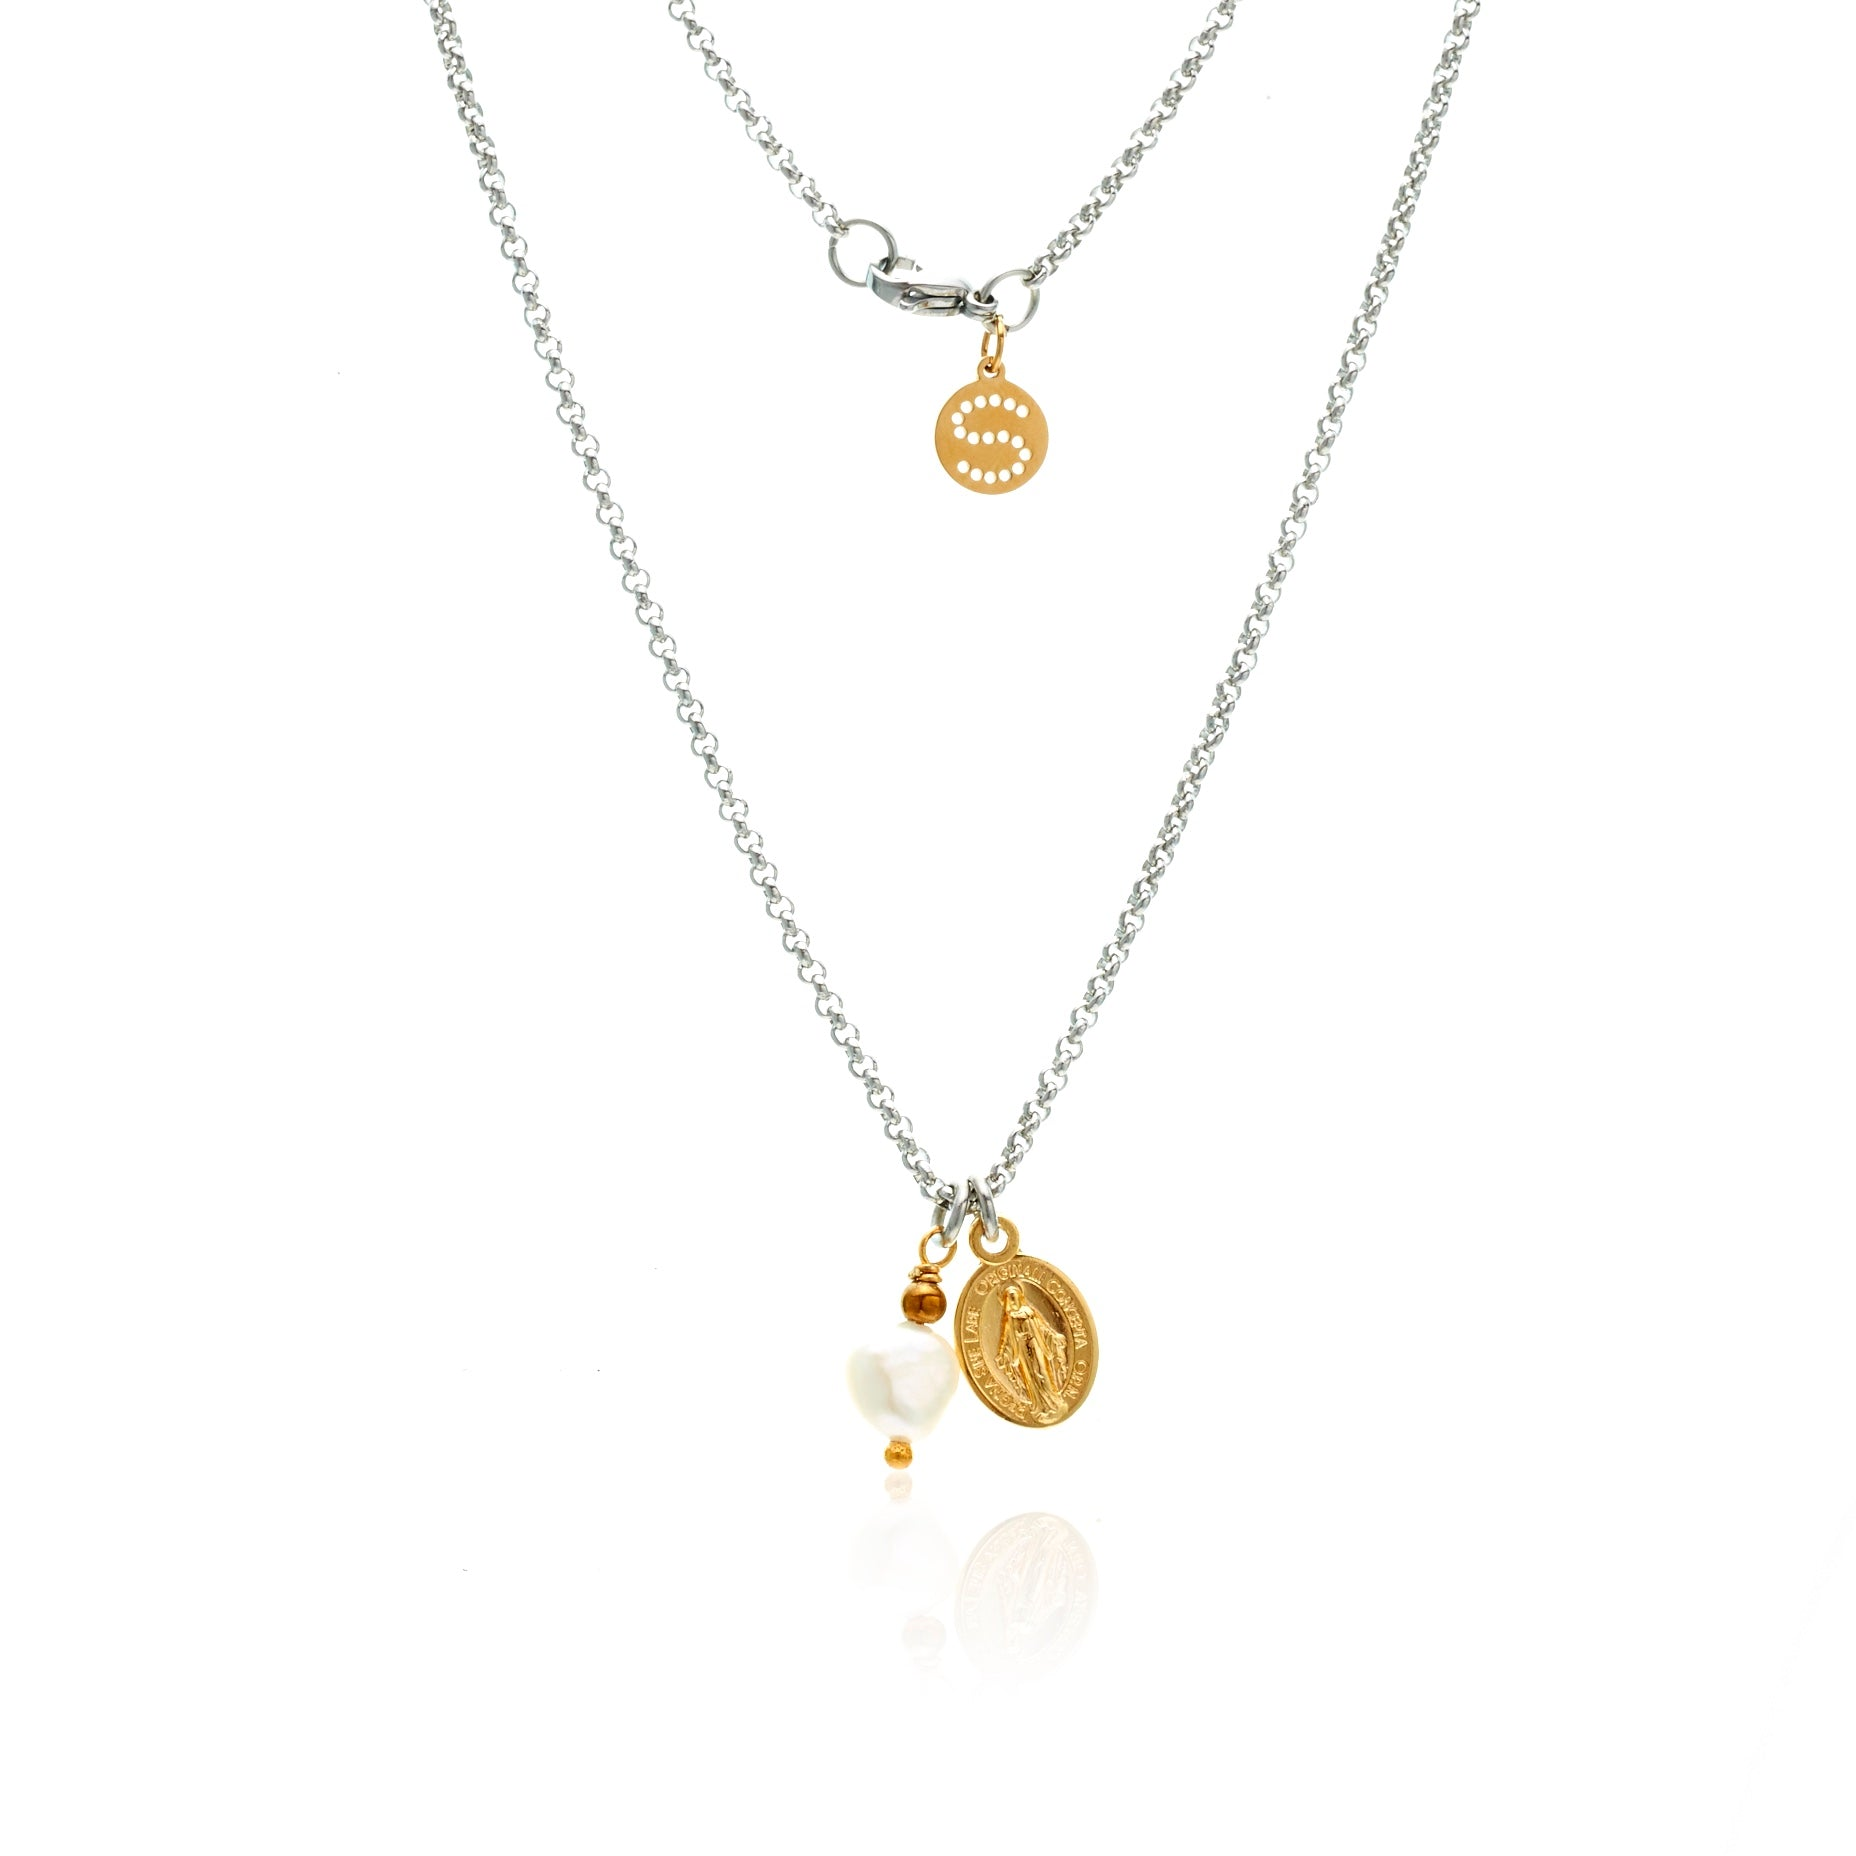 Silk & Steel Jewellery Together Forever Necklace with saint charm and pearl pendant